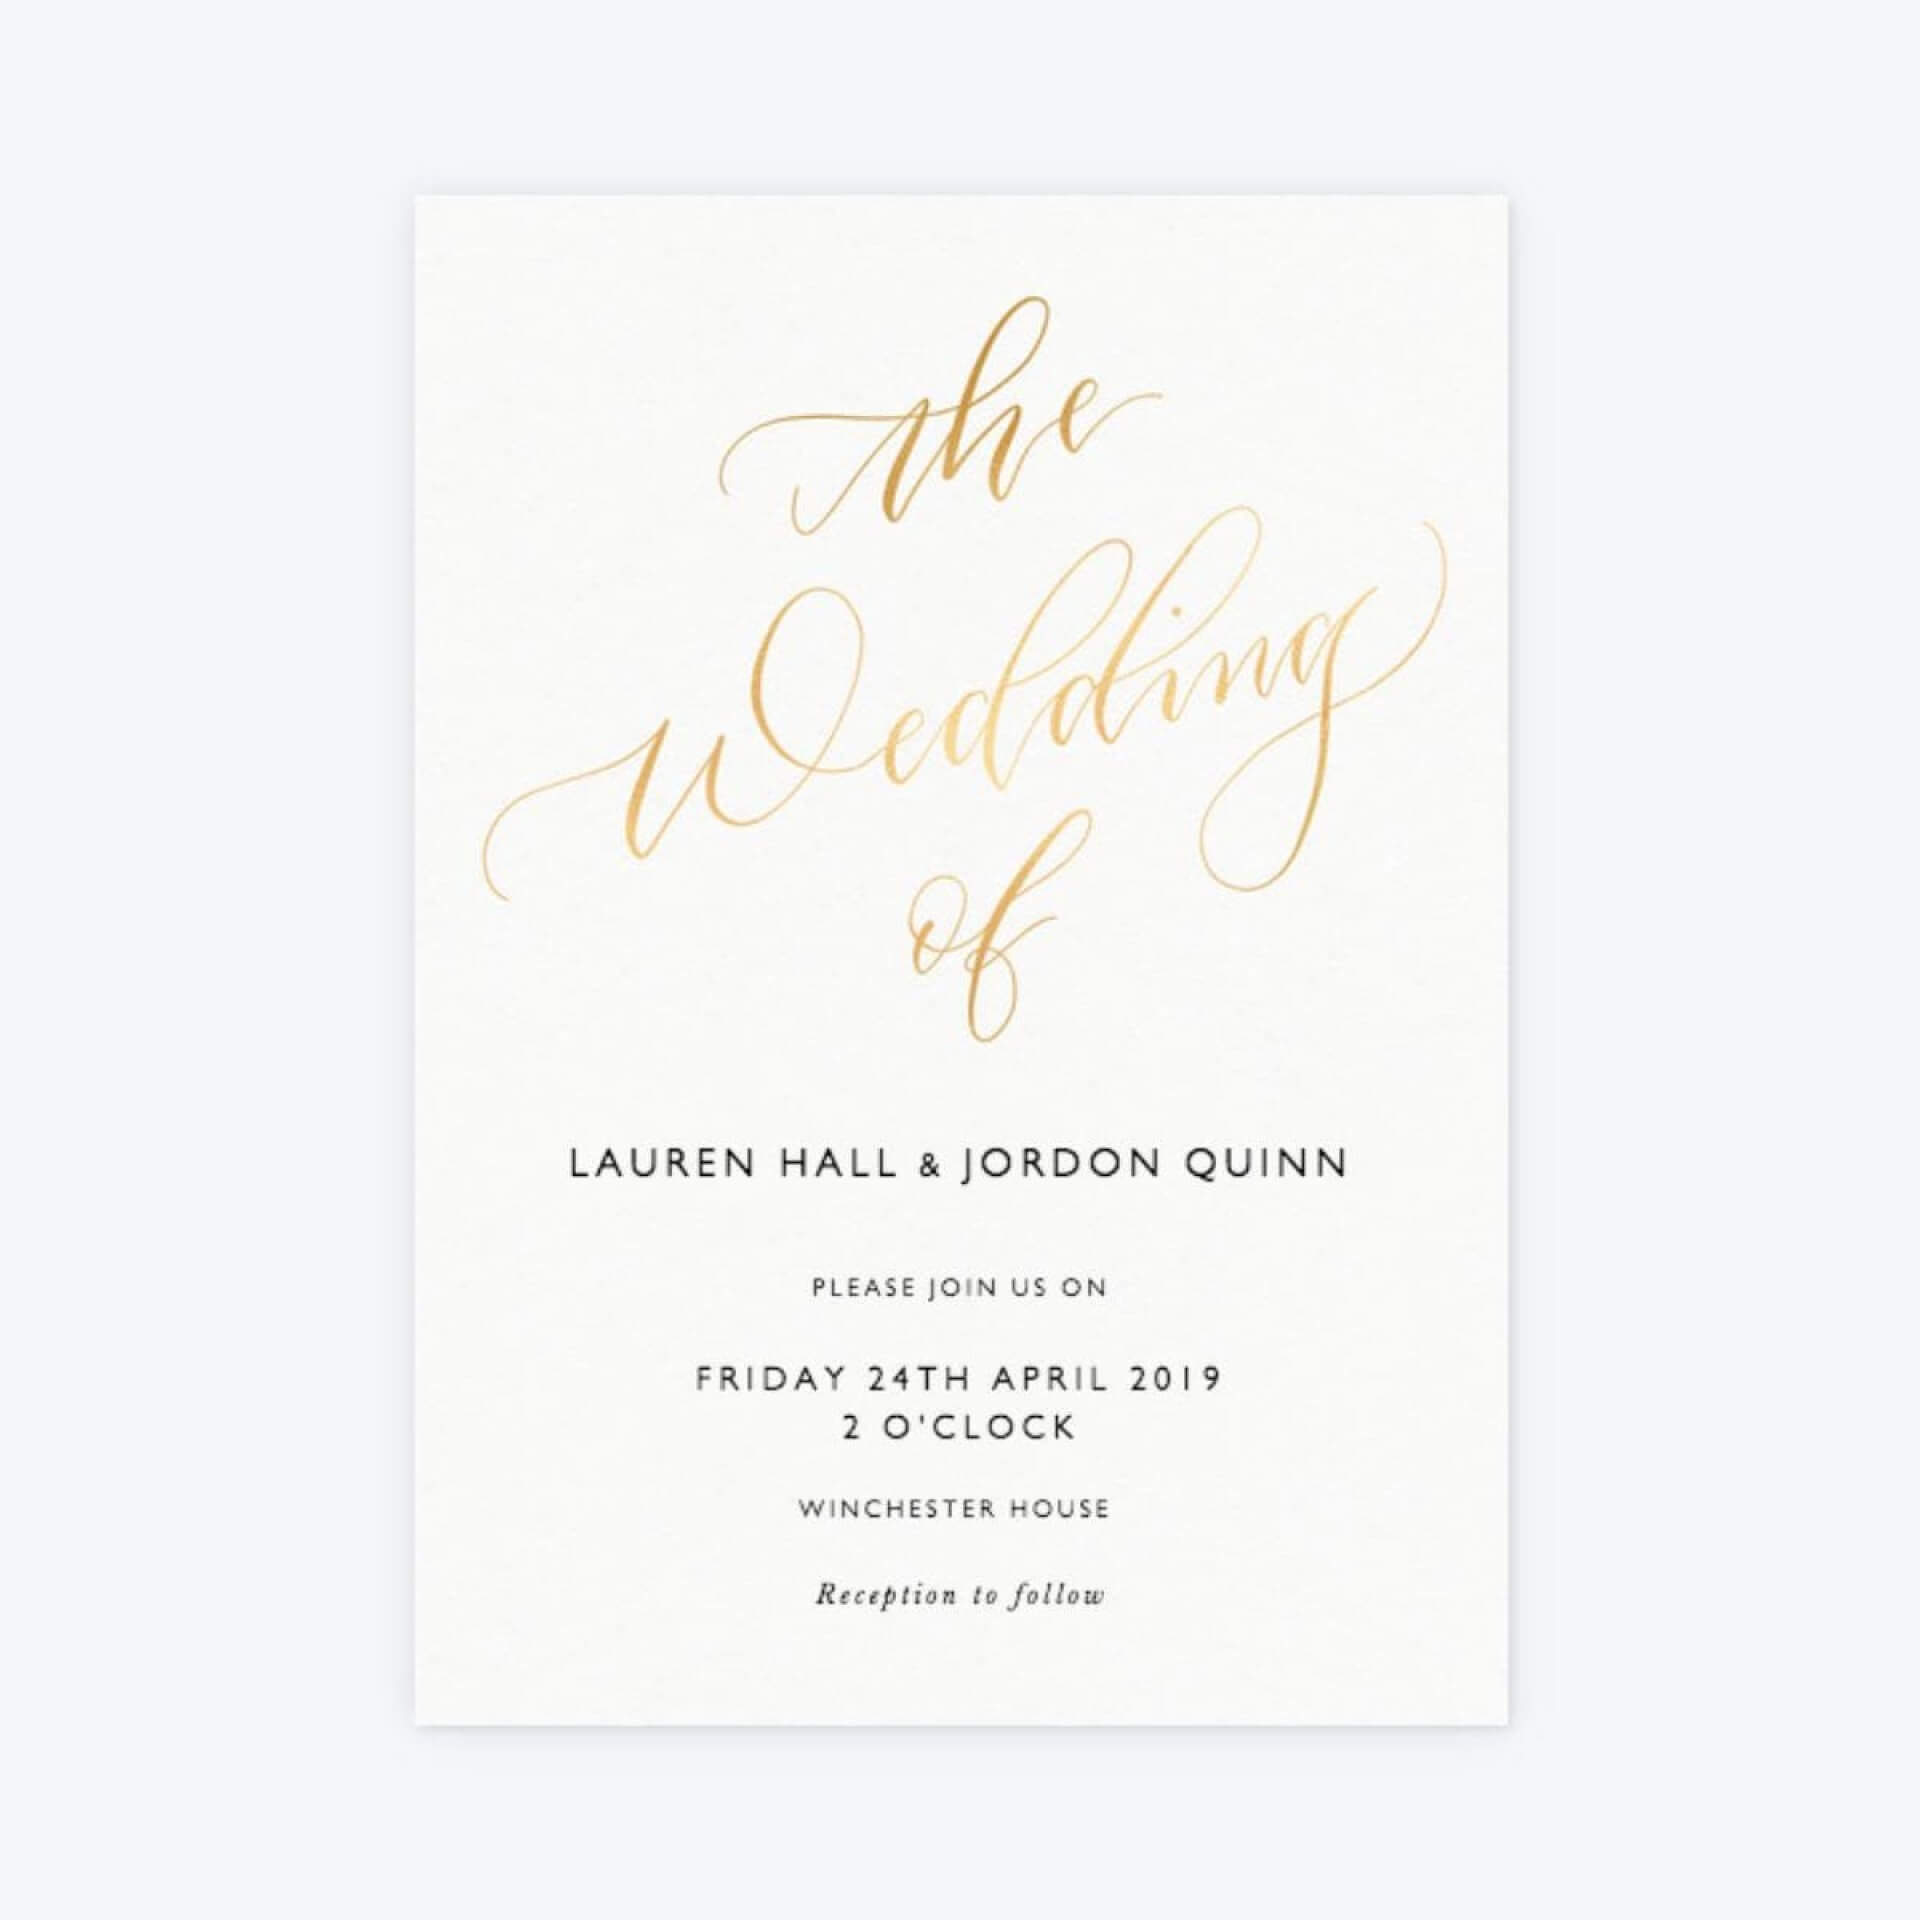 030 Wedding Registry Insert Card Template Ideas Outstanding Within Wedding Hotel Information Card Template